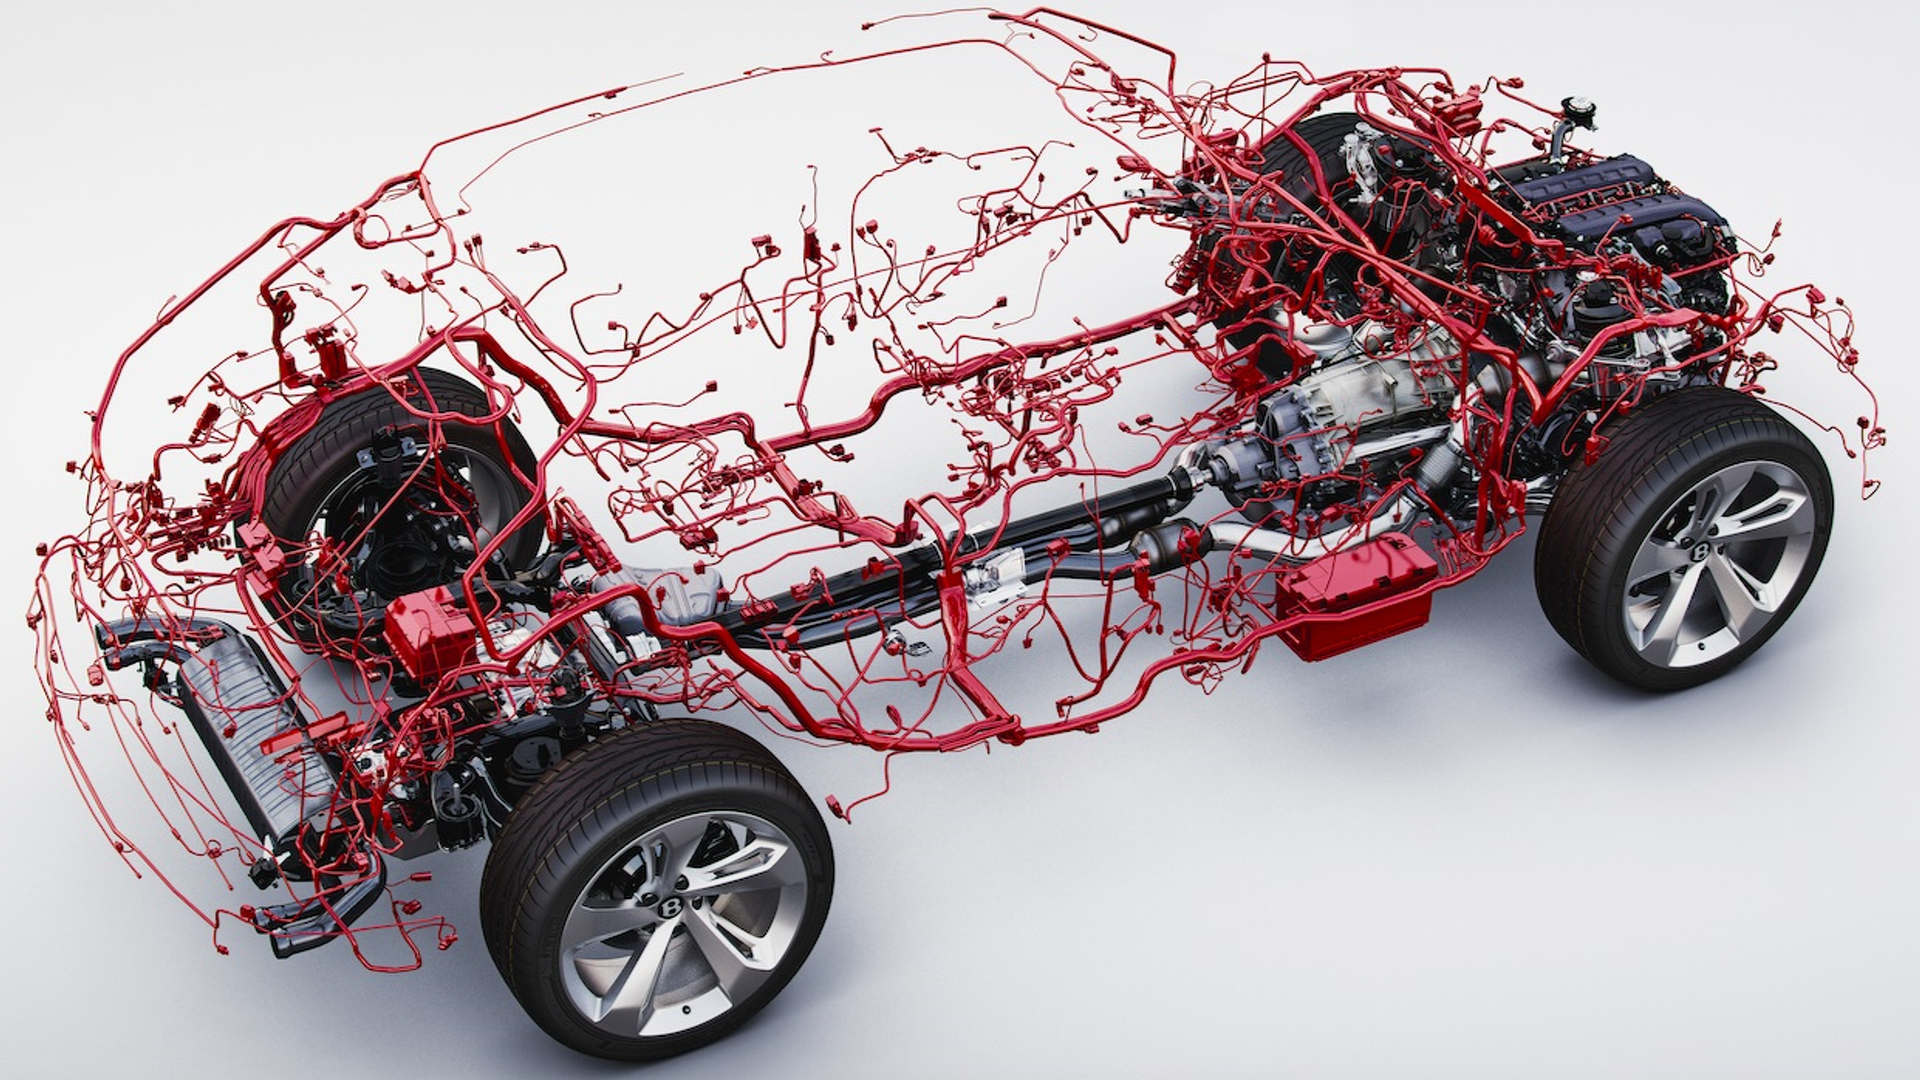 bentley bentayga wiring harness is weirdly beautiful custom car wiring harness  motor1.com